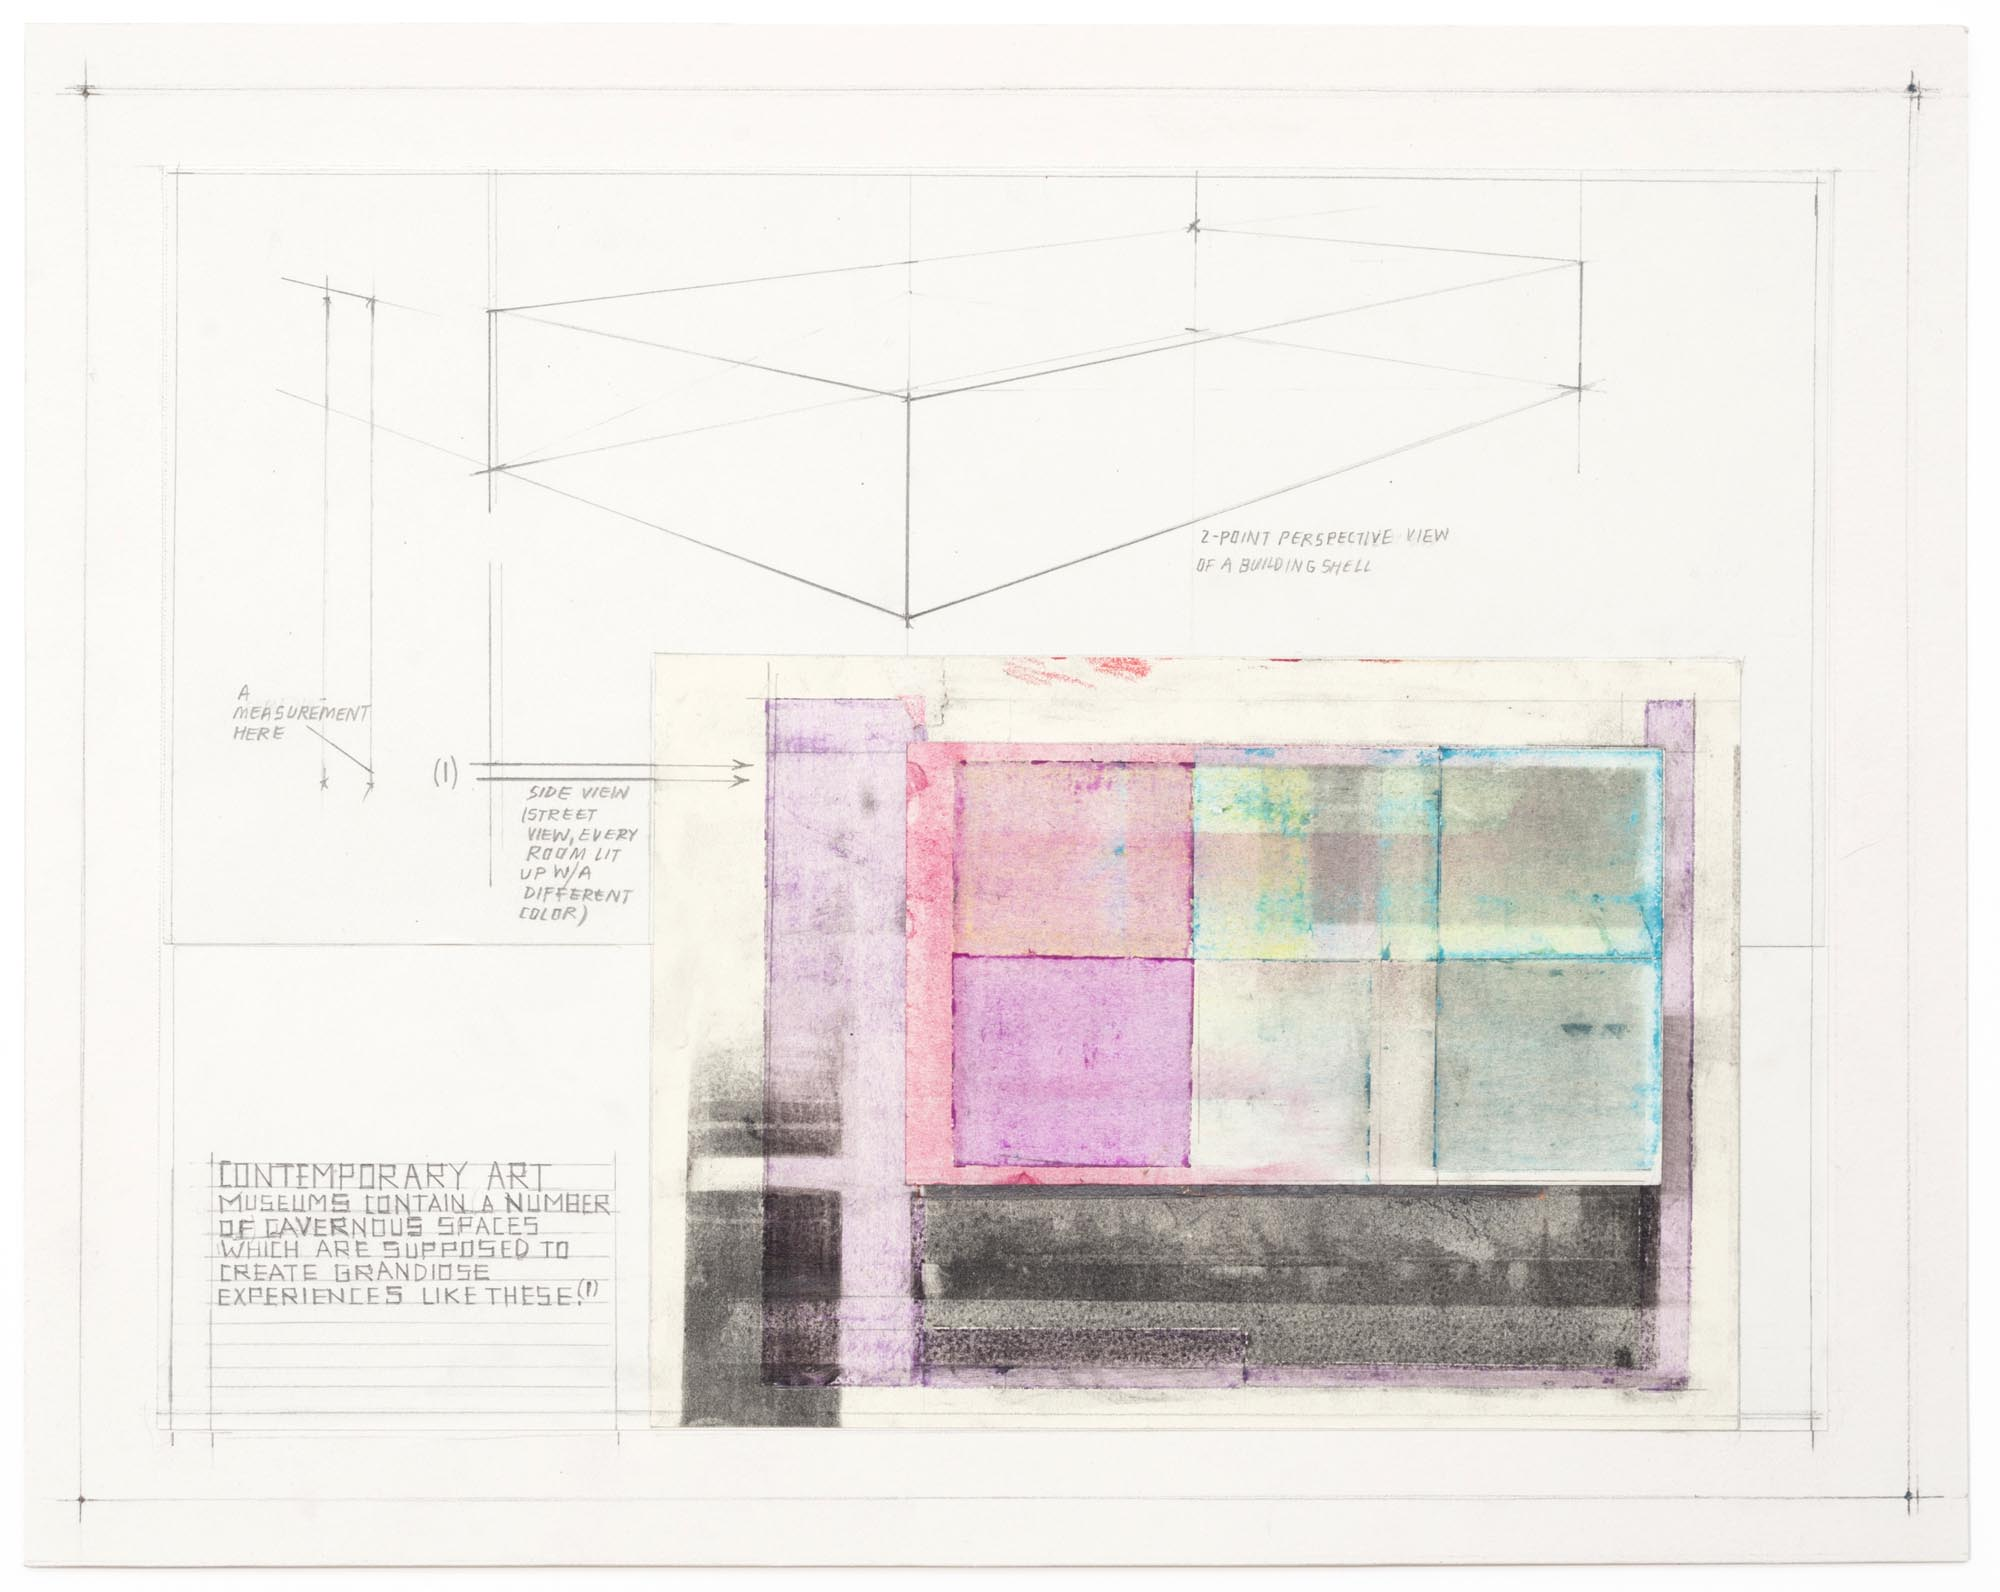 Deb Sokolow, Contemporary Art Museums Contain a Number of Cavernous Spaces, 2019. 11x14 inches. Graphite, colored pencil, pastel, crayon, and collage on paper.